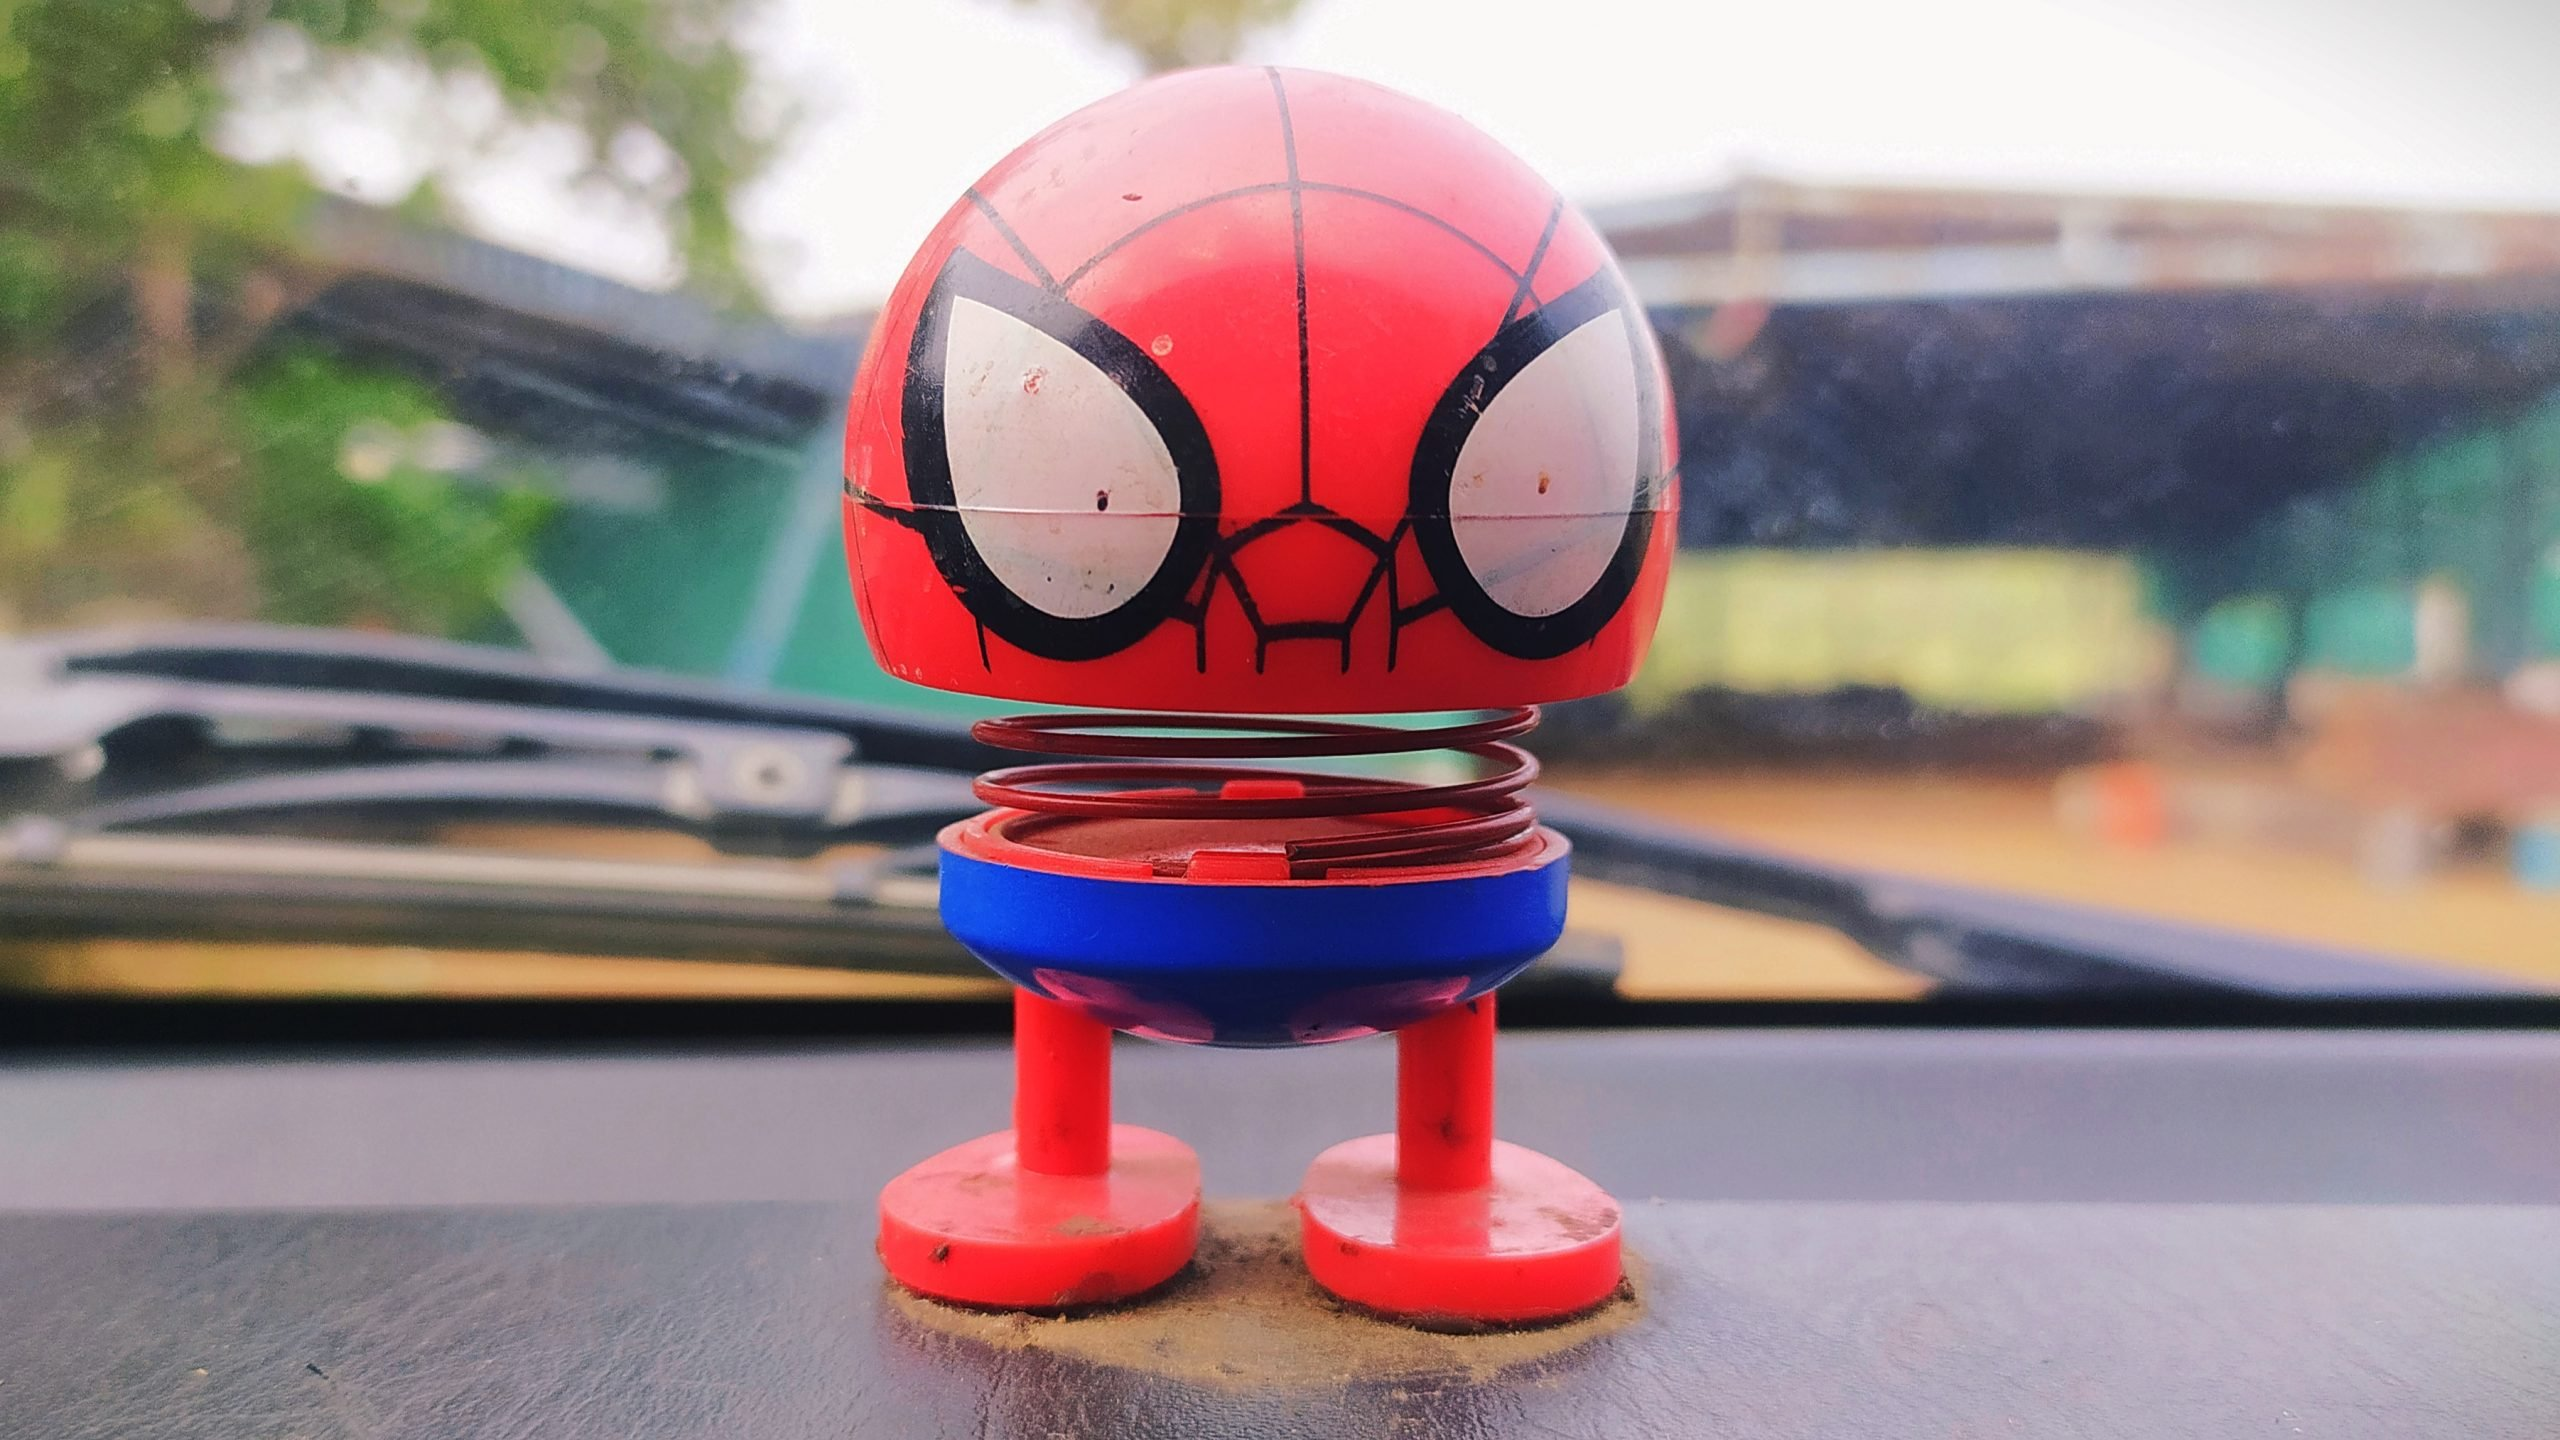 A cartoon toy on a car dashboard